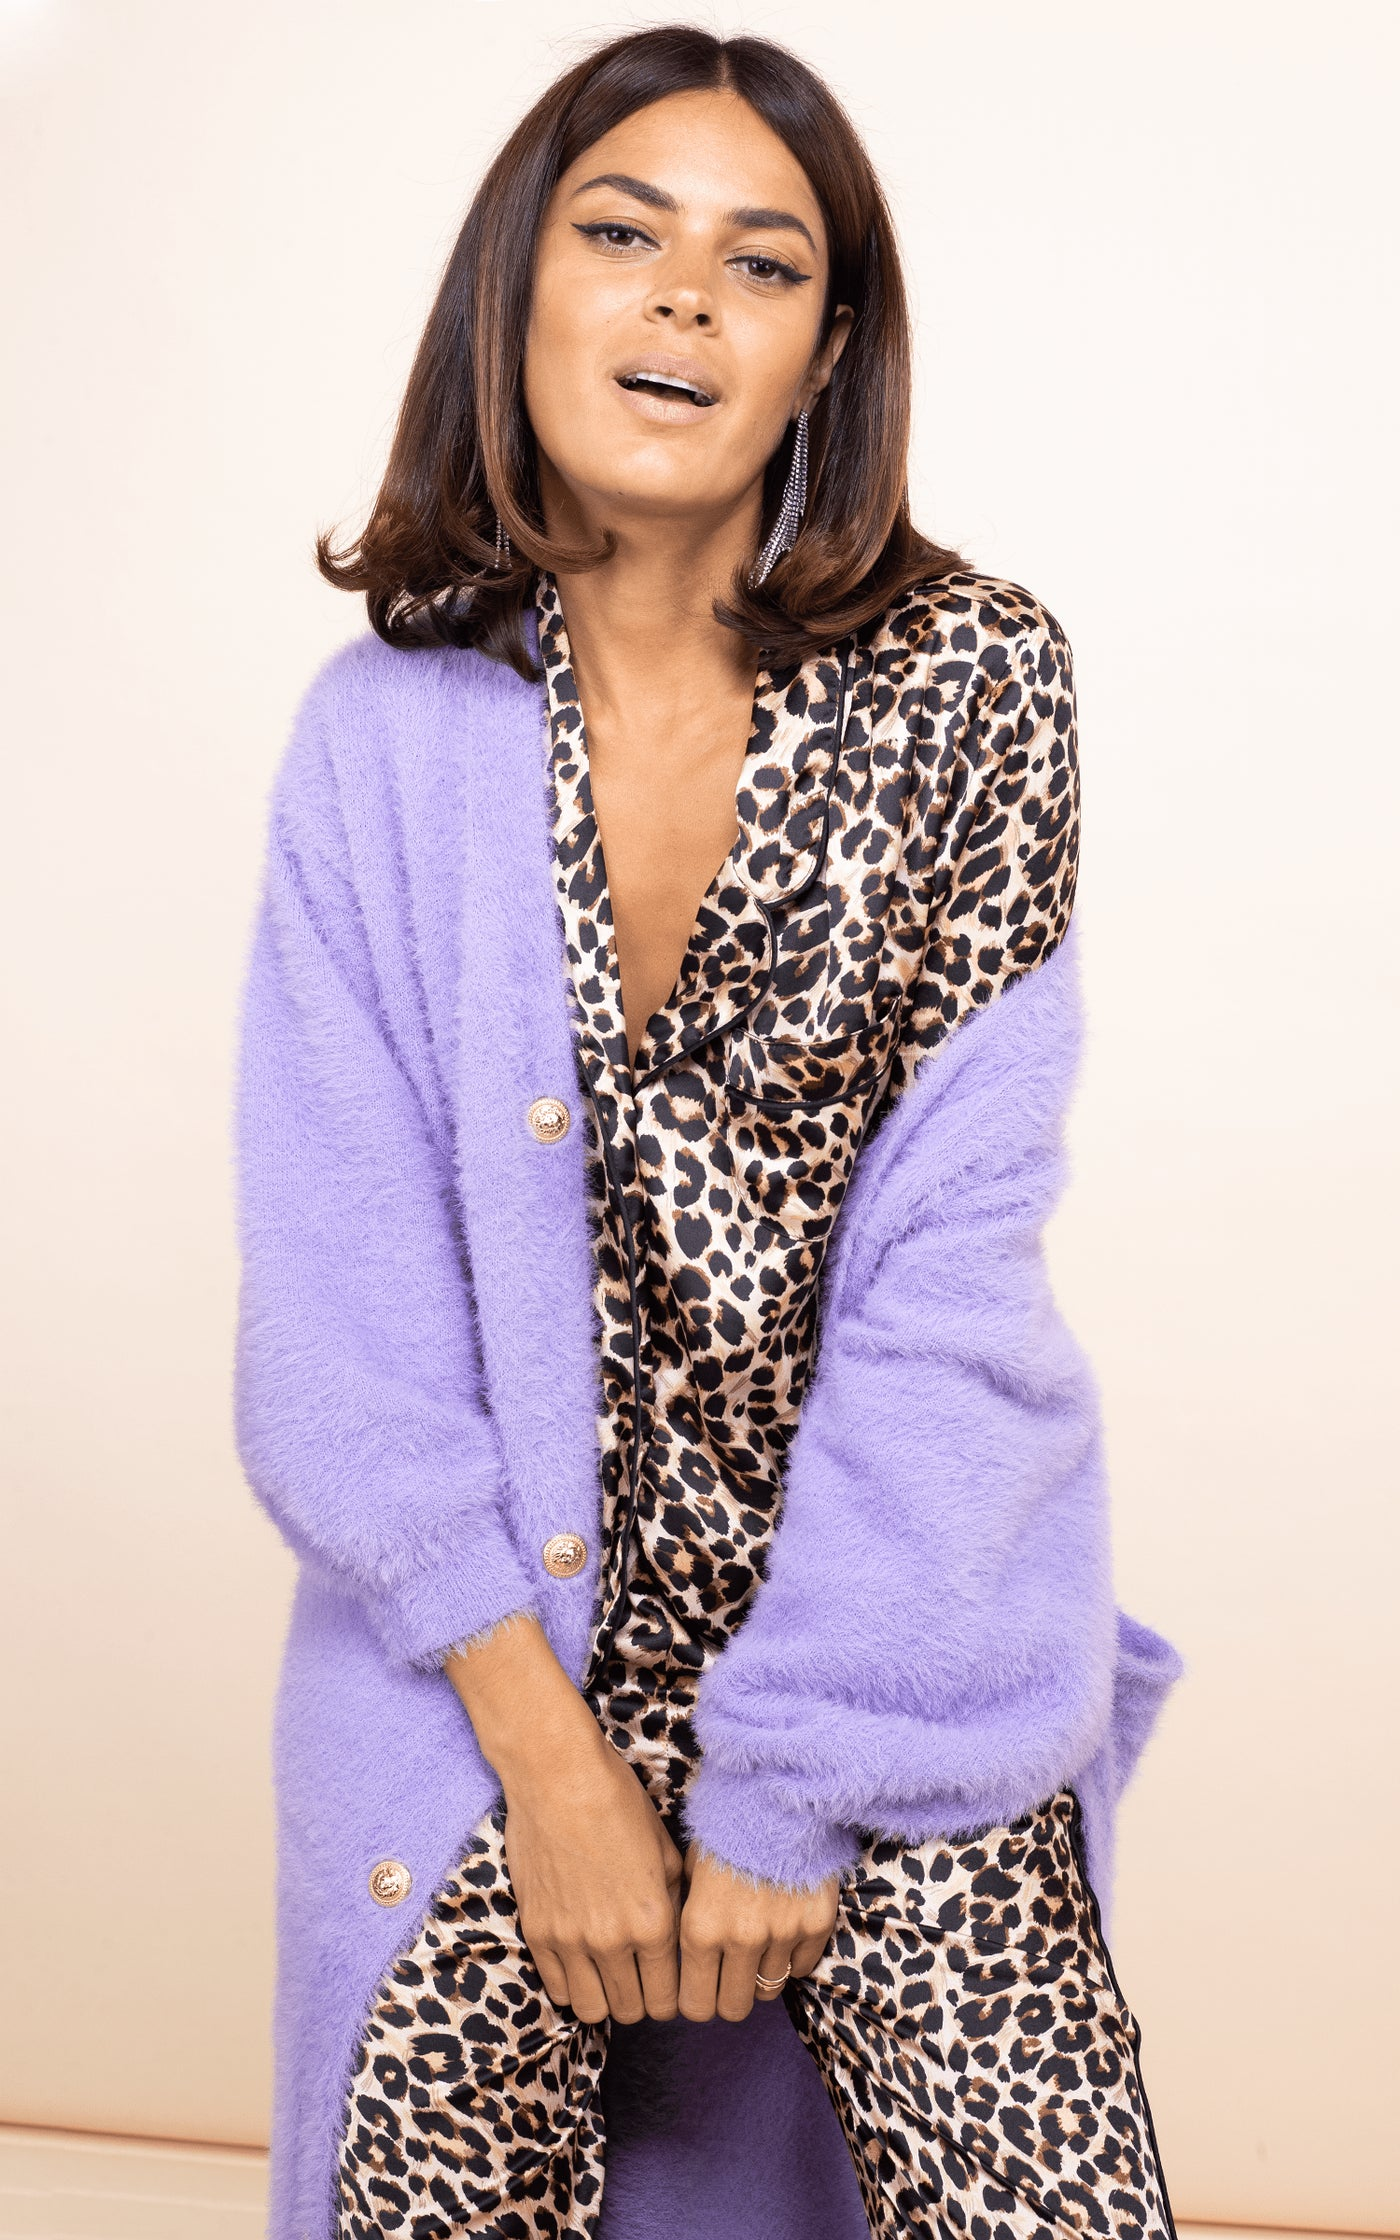 Dancing Leopard model faces forward wearing Enya PJ Set in Rich Leopard print with purple cardigan